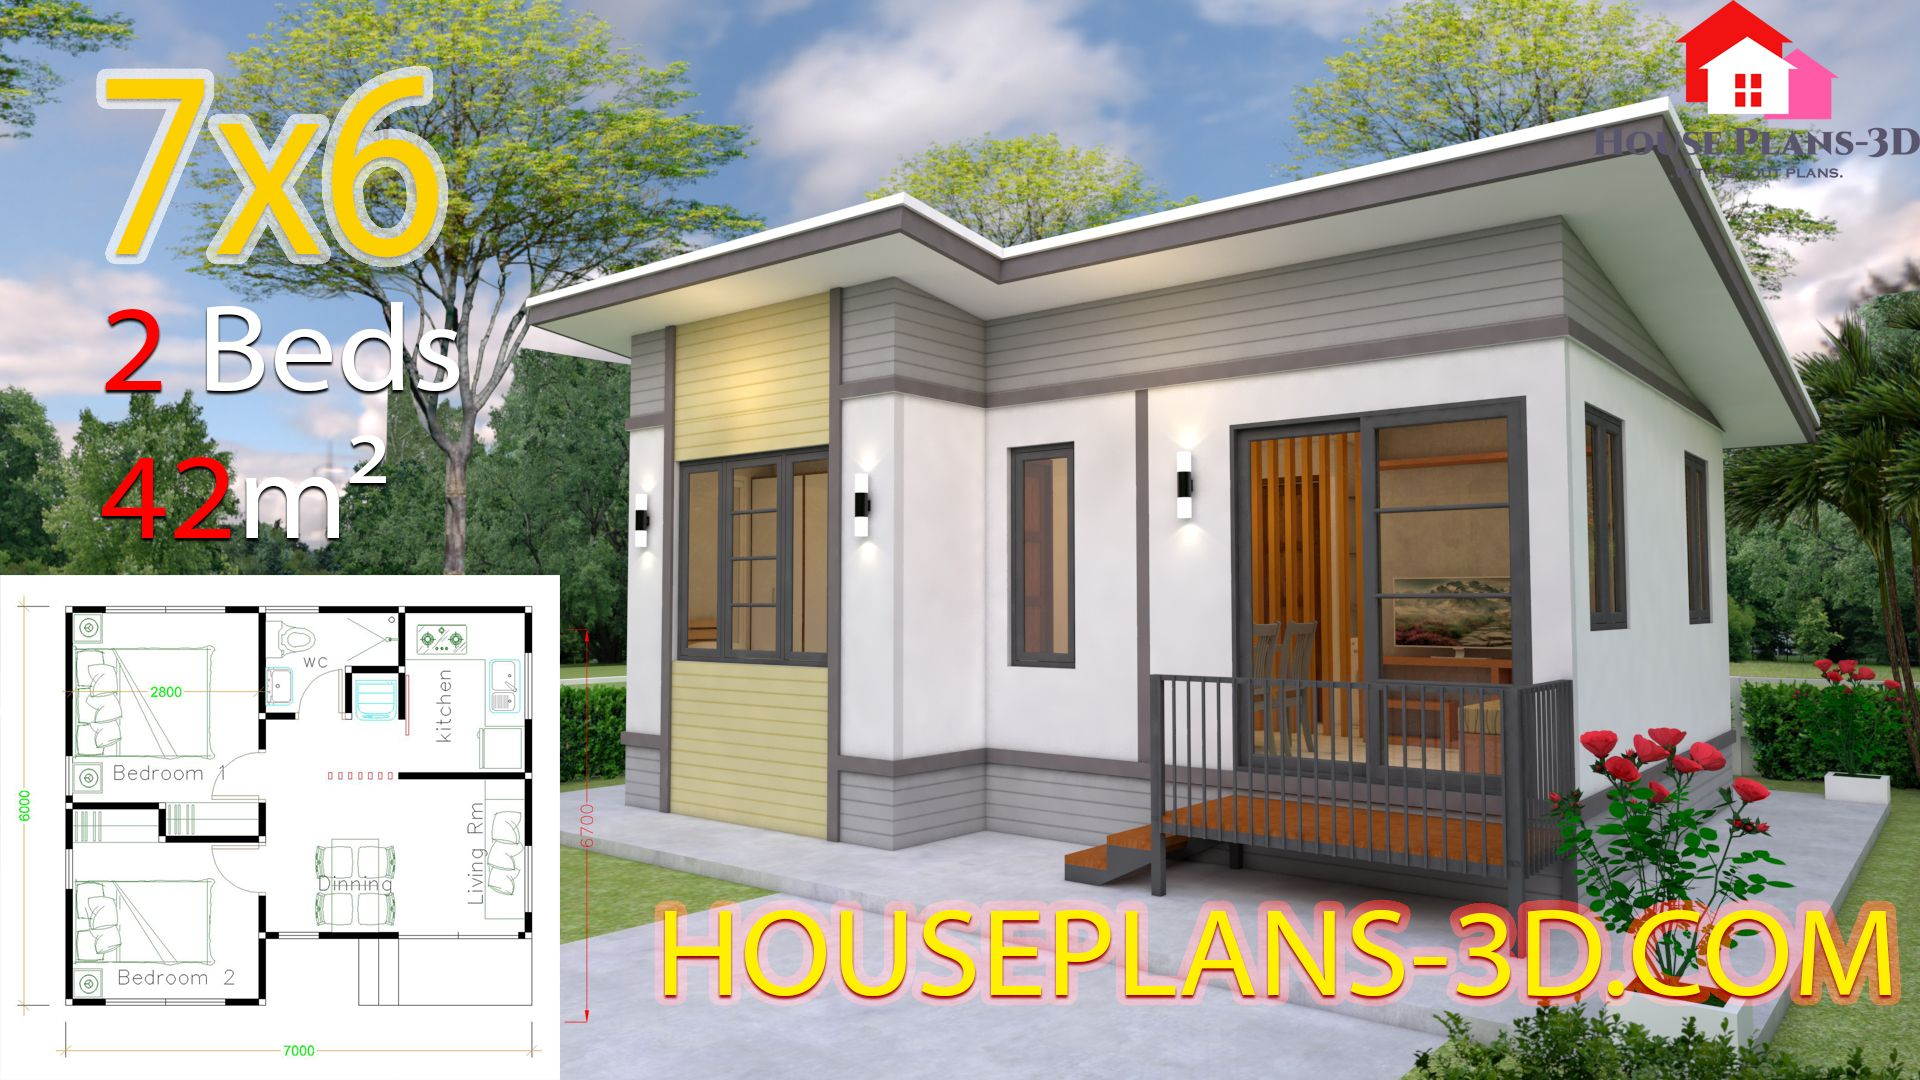 3D Cut model of a Floor Plan. Find all architectural